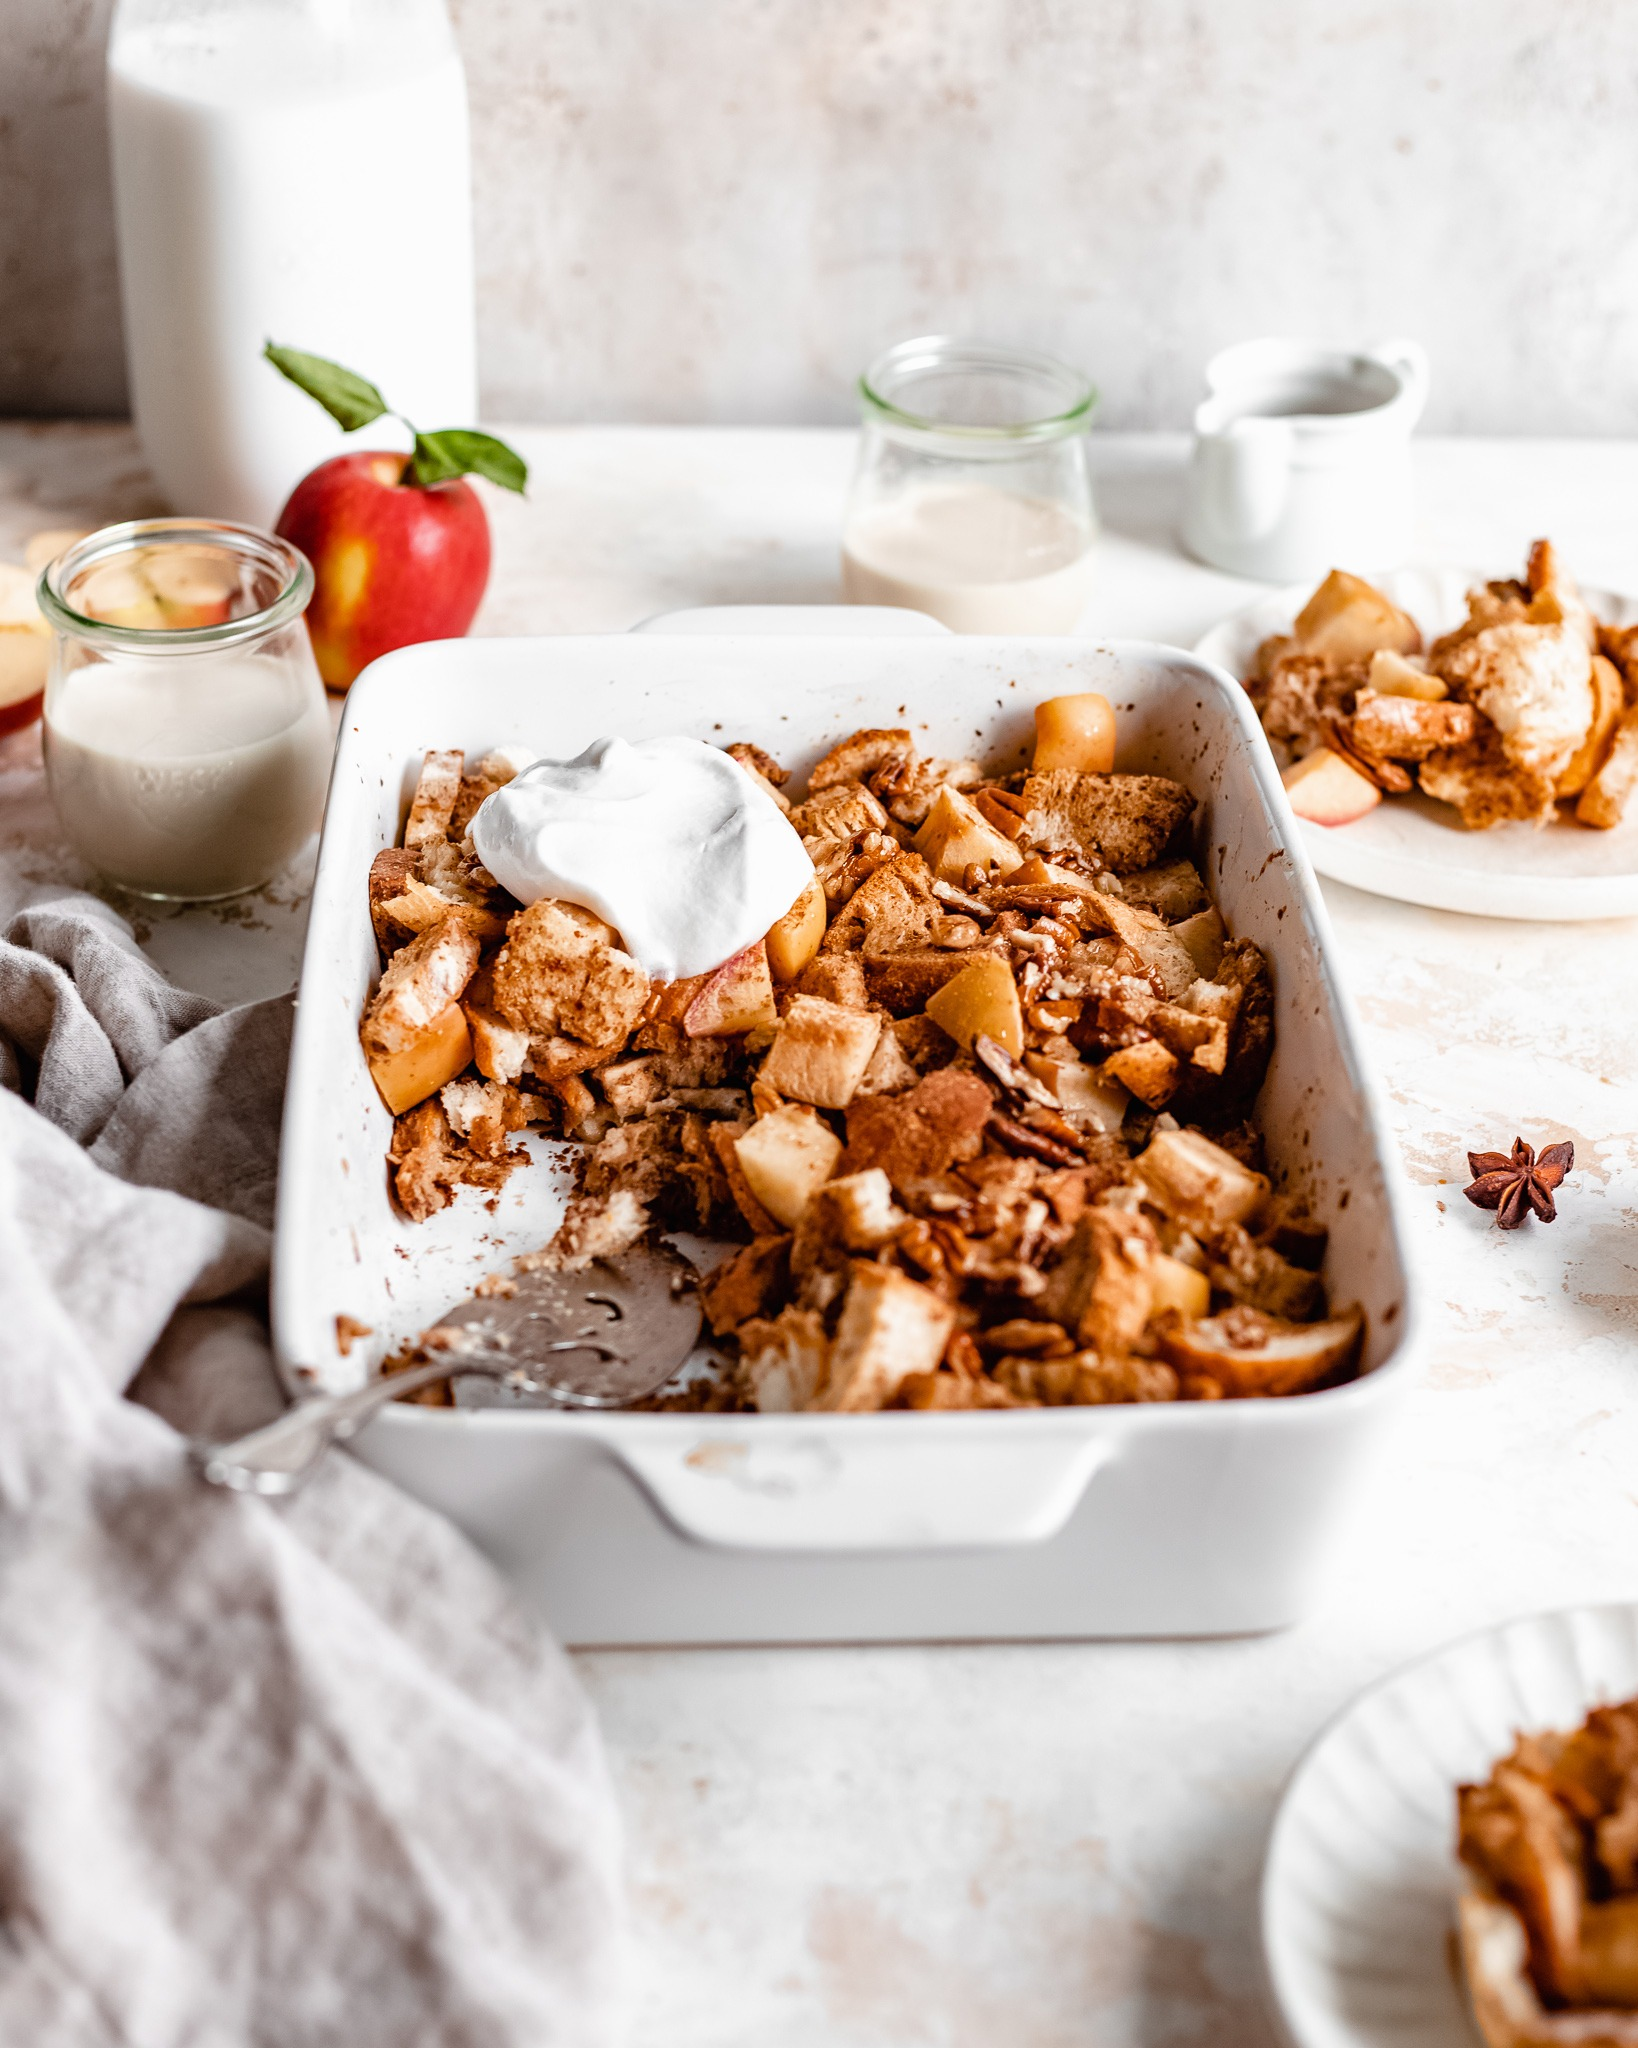 A pan of warm and fresh oven baked french toast. There are cinnamon apple and candied walnuts on the tray. Topped with a scoop of coconut cream, this apple french toast casserole is ready to be served with a big serving spoon.